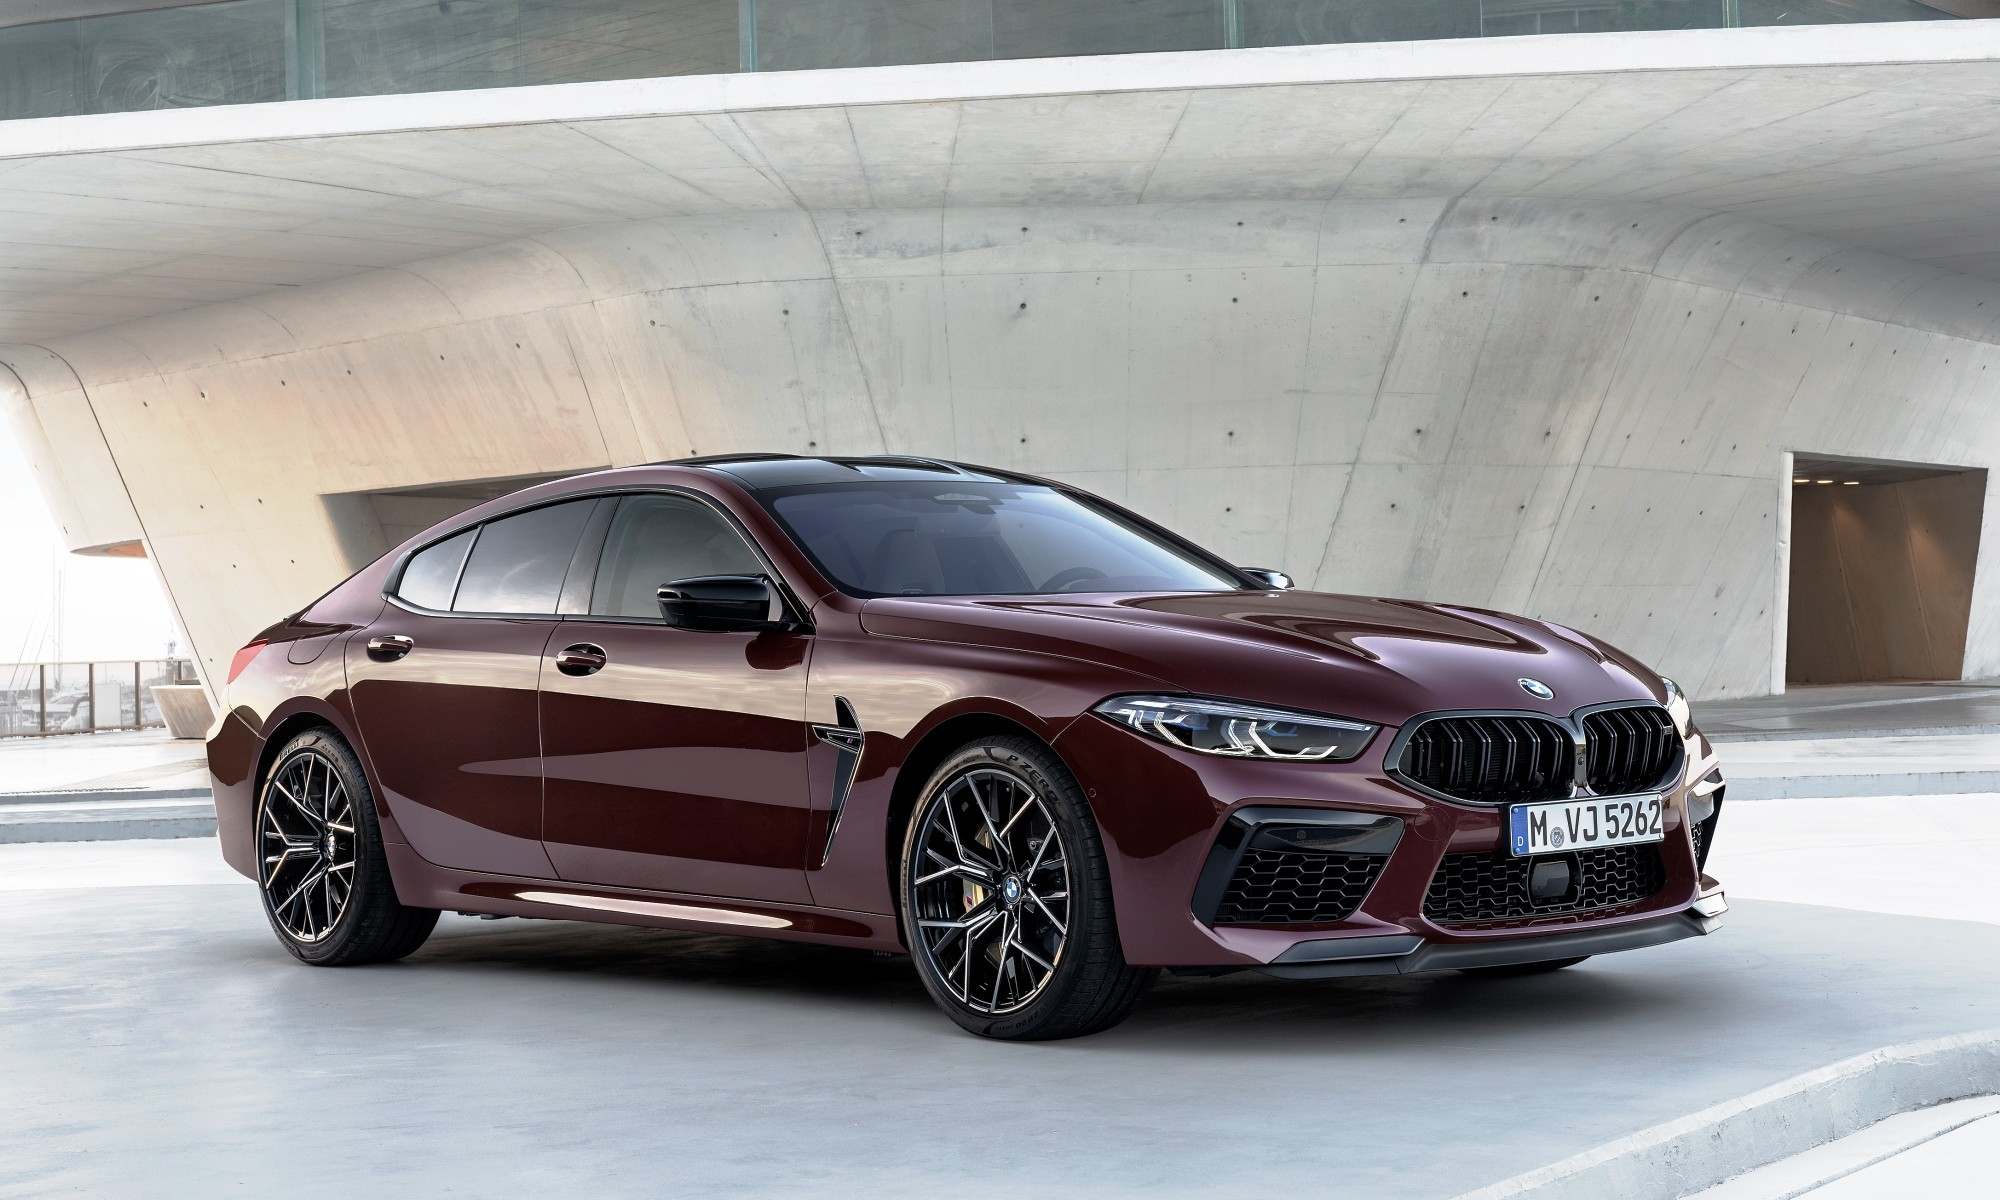 BMW M8 Gran Coupe front